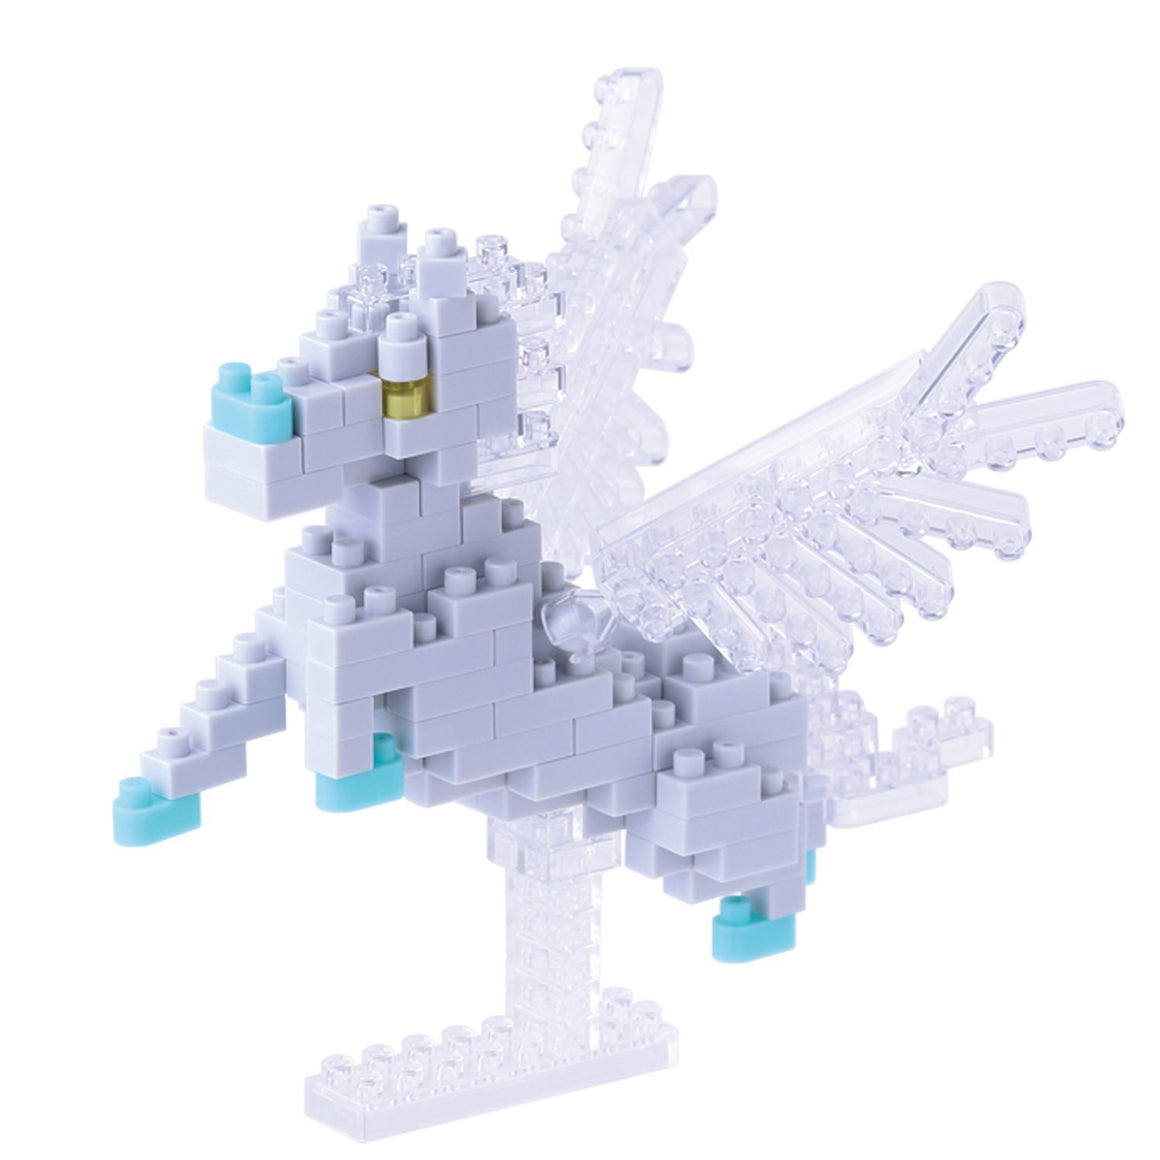 Nanoblocks - Pegasus Not Lego or Megablocks